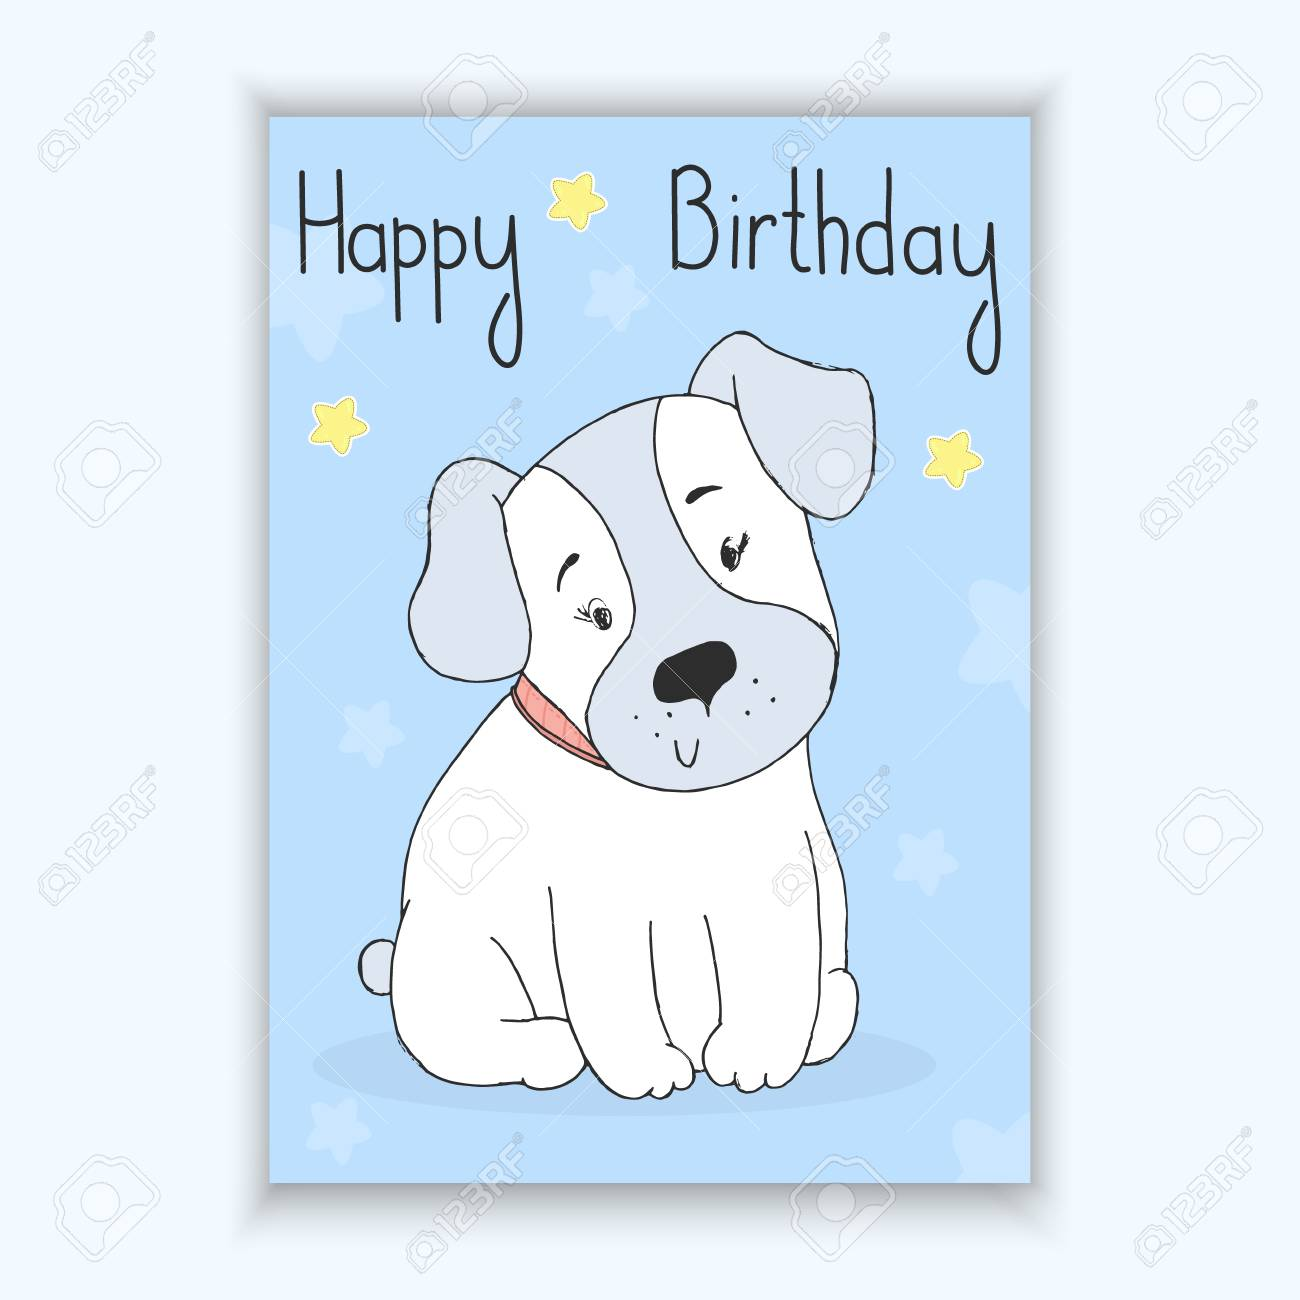 photo relating to Dog Birthday Cards Printable Free titled pleased birthday card with Hand Drawn Lovable cartoon doggy. vector..